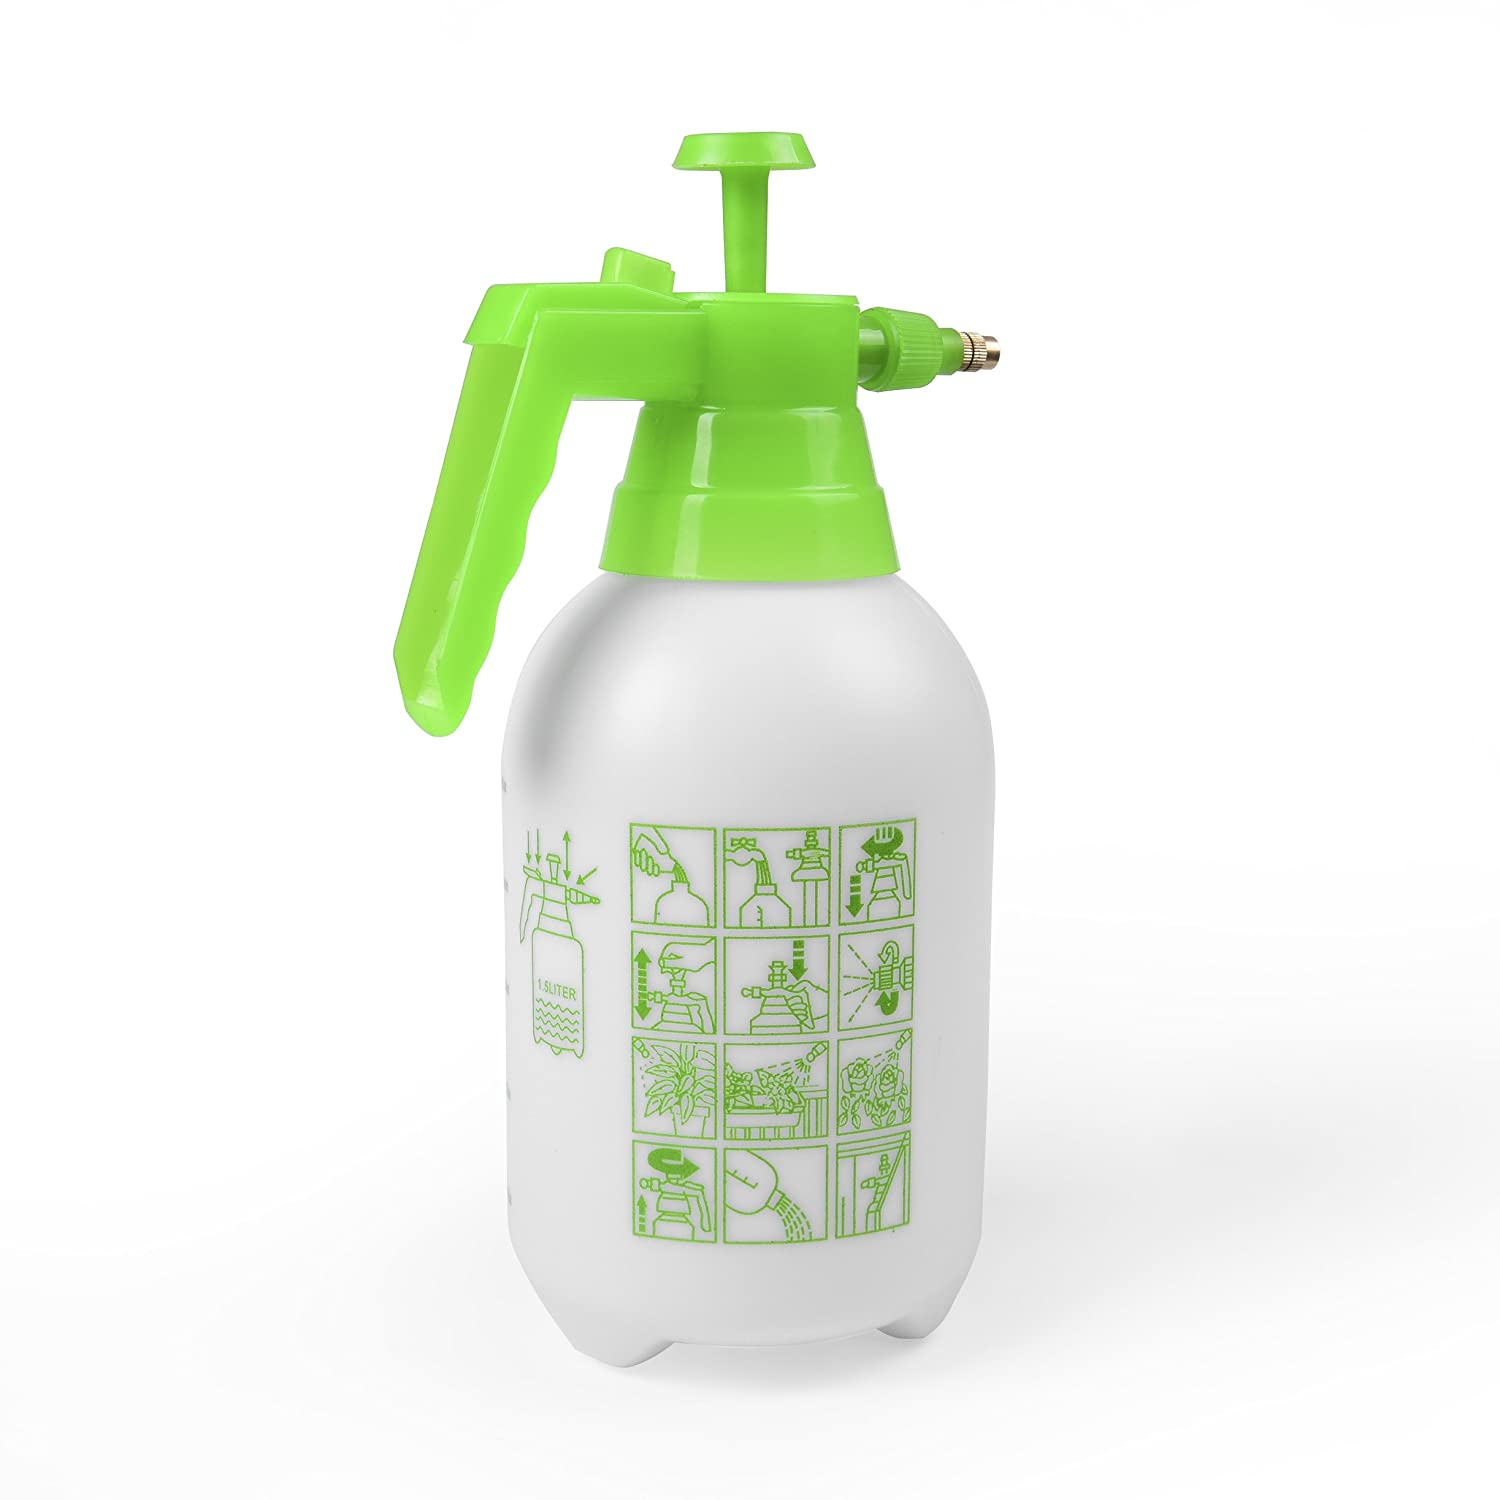 ... Hand Pump Garden Sprayer   Handheld Pressure Sprayers Sprays Water,  Chemicals, Pesticides, Neem Oil And Weeds   Perfect Lightweight Water Mister,  ...